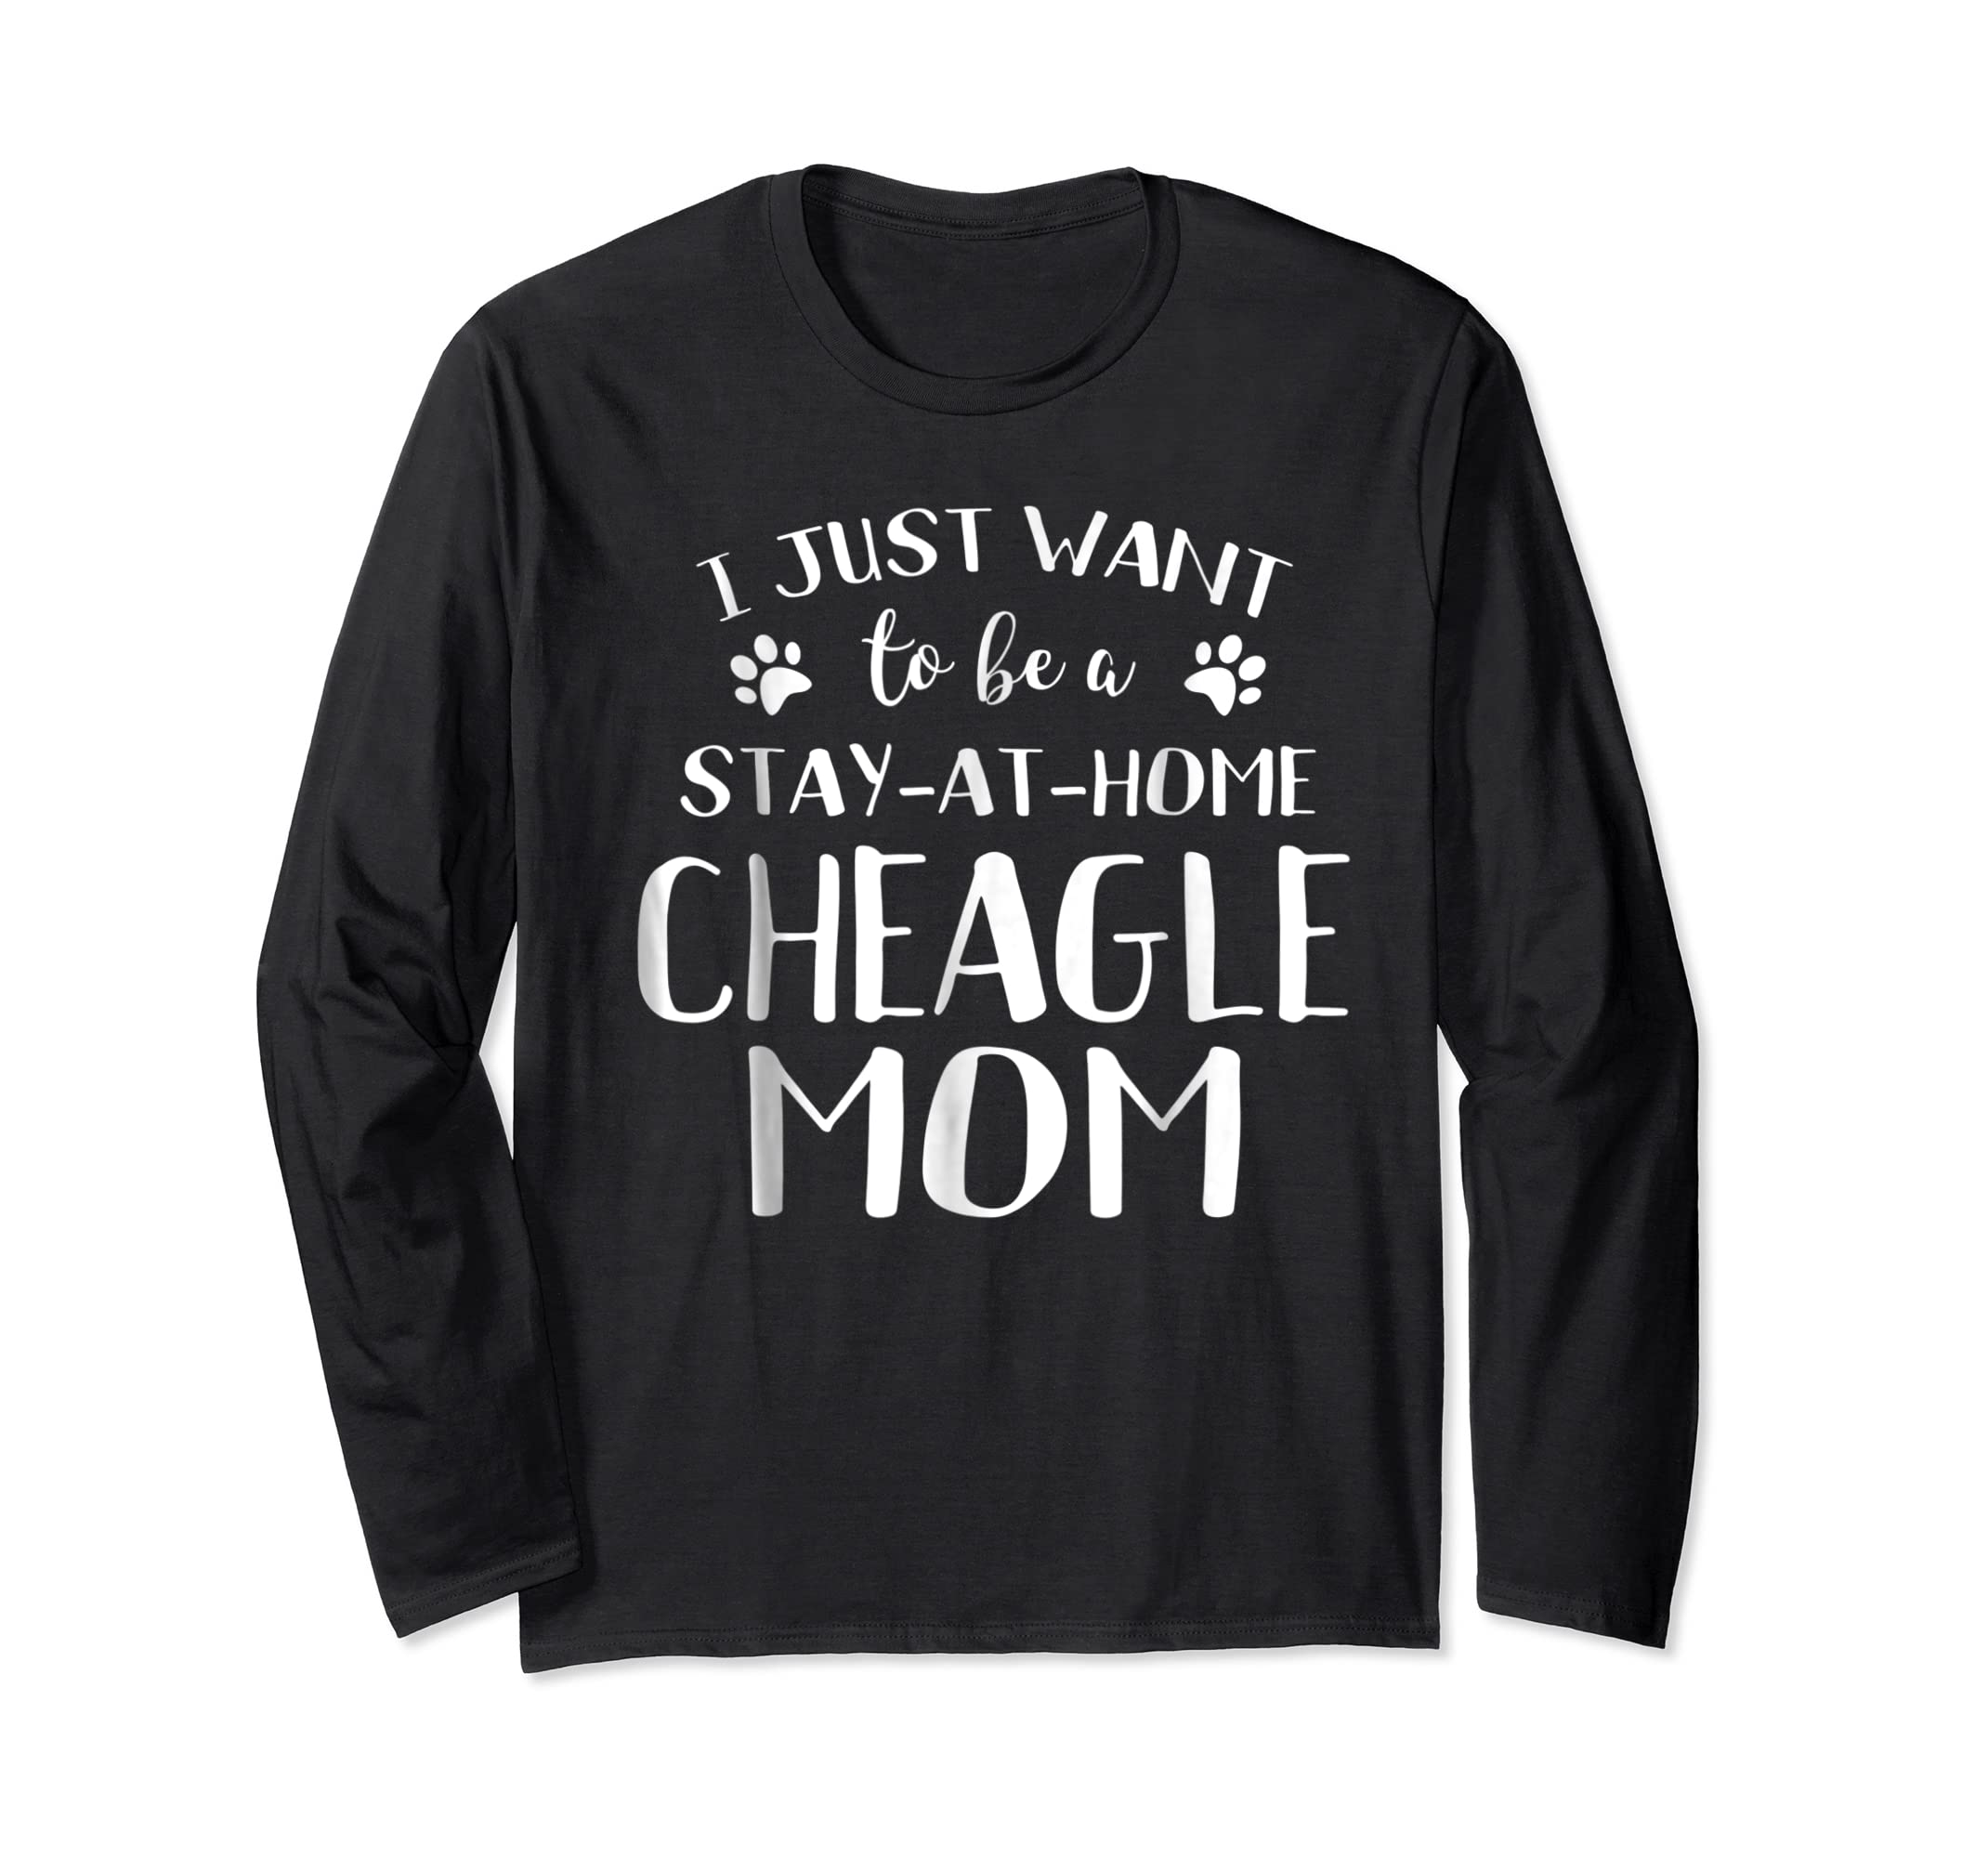 Cheagle Mom TShirt Cheagle Dog Breed Gift Pet Lover-Long Sleeve-Black